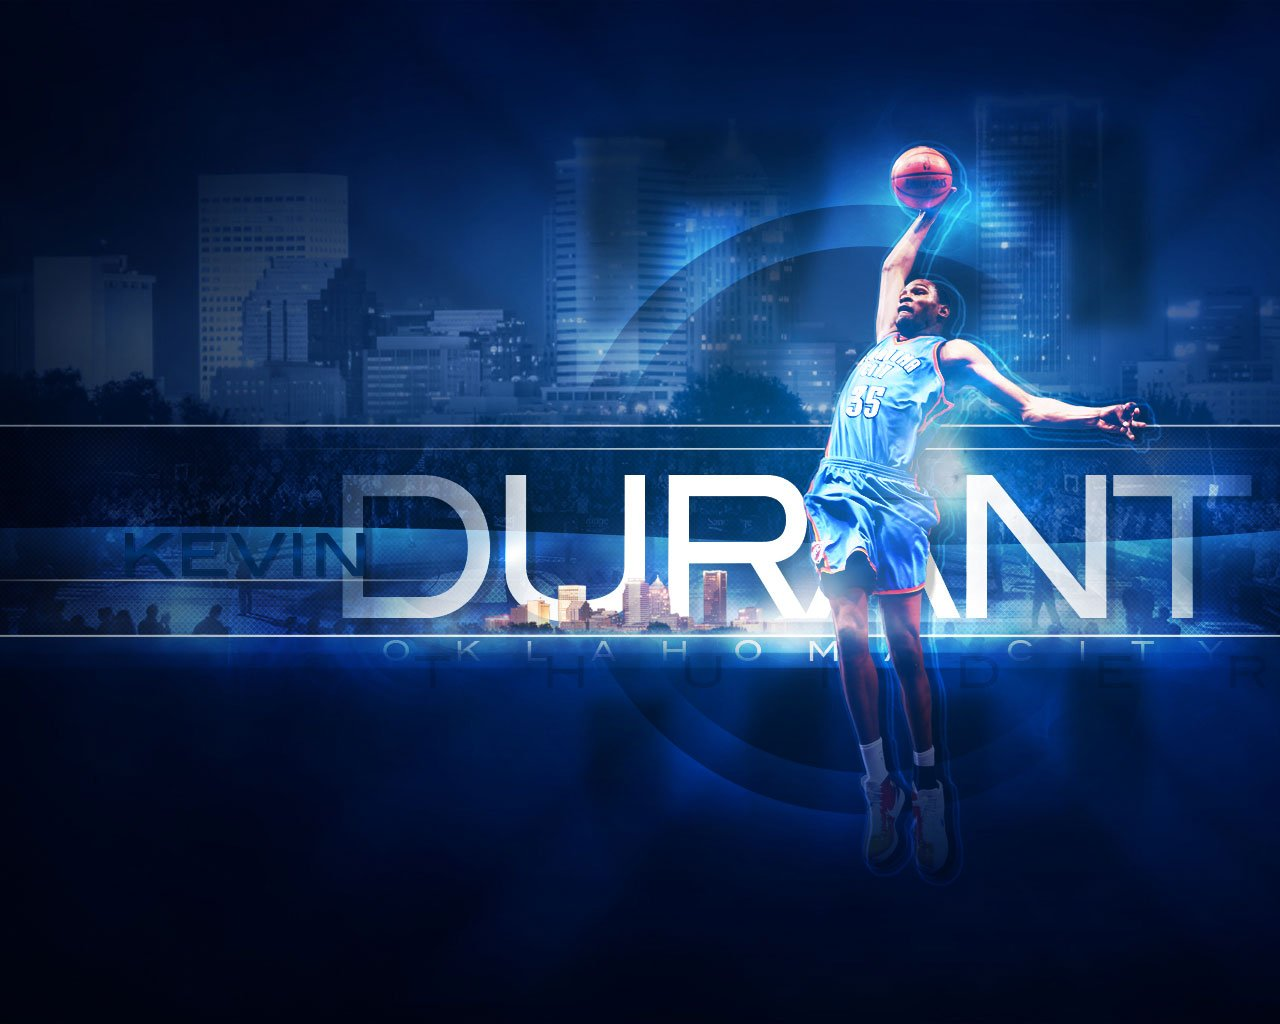 49] Durant Wallpaper 2015 on WallpaperSafari 1280x1024